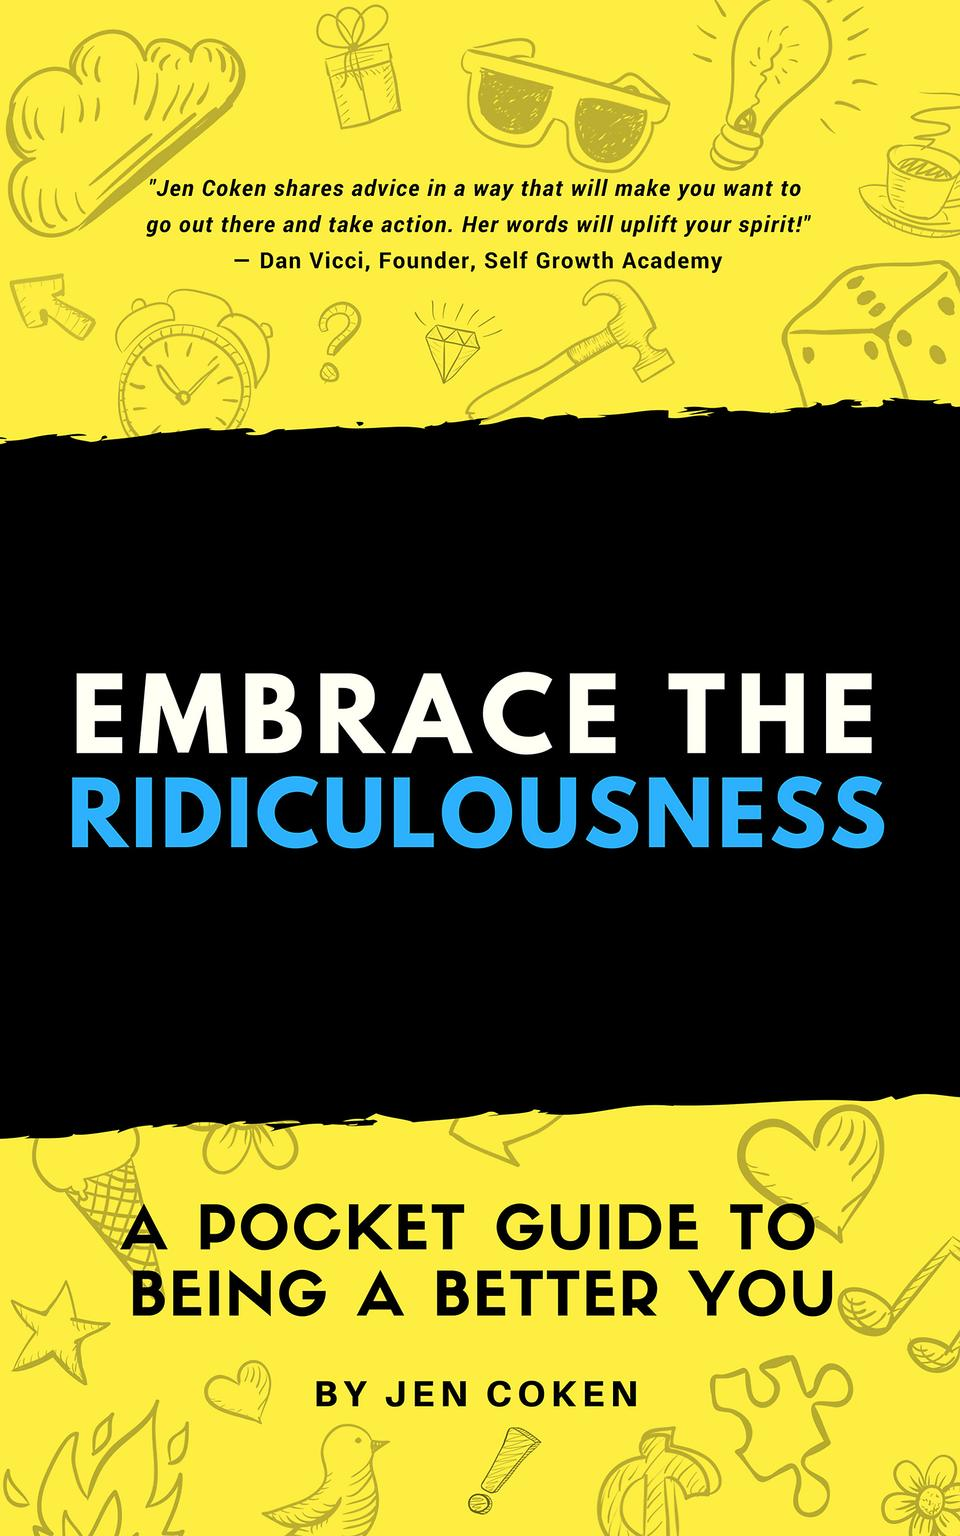 Embrace the Ridiculousness: A Pocket Guide to Being A Better You